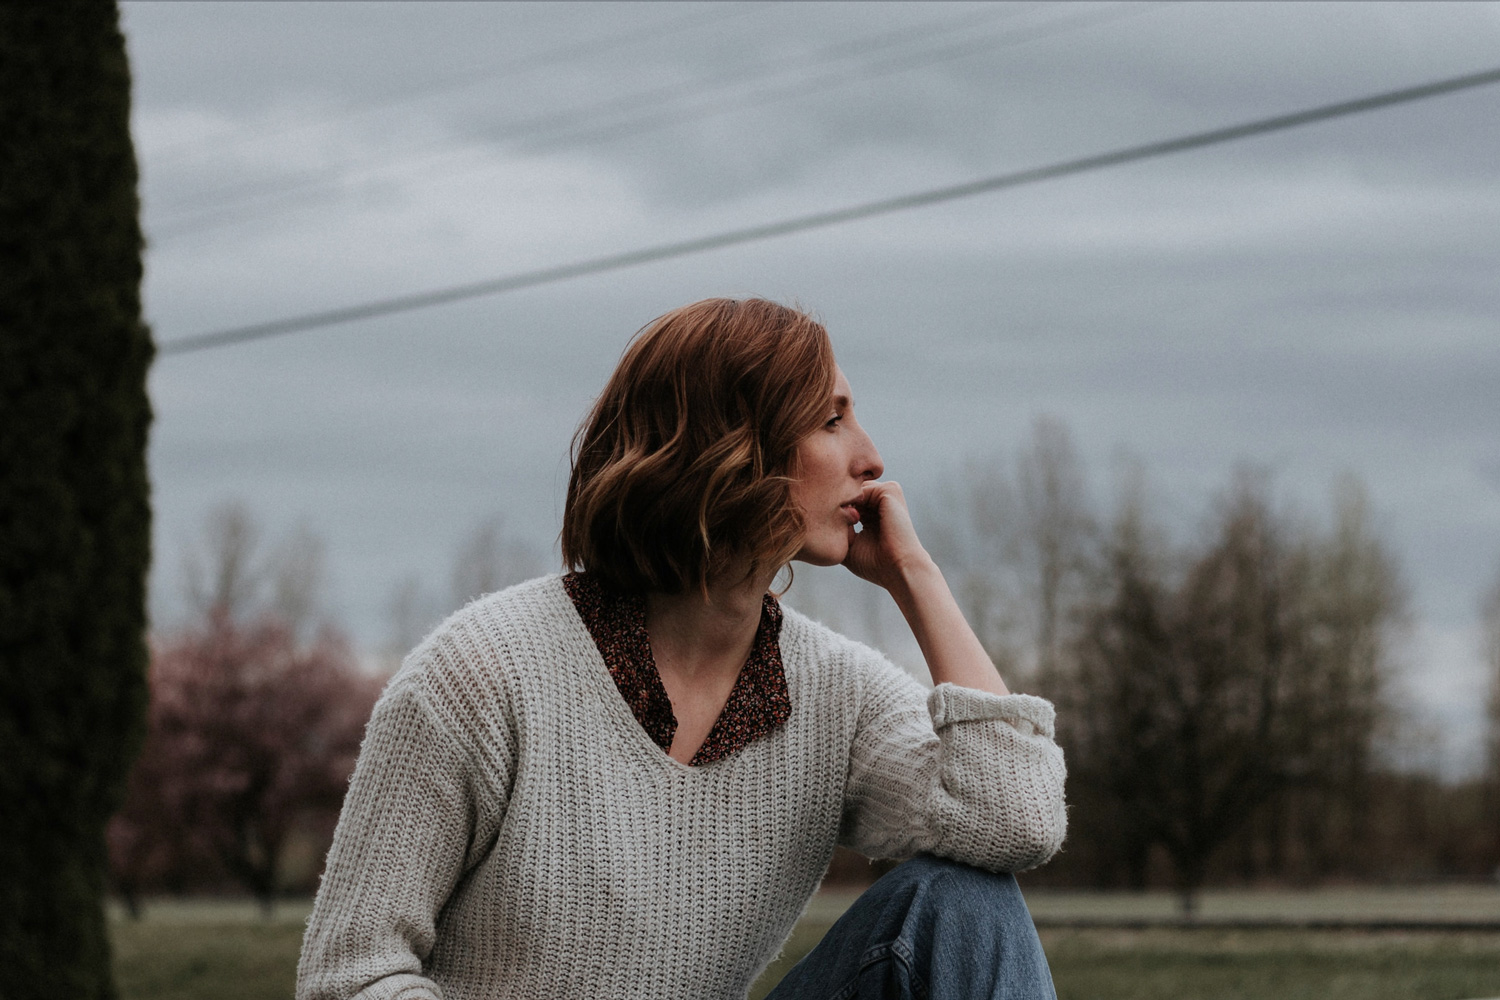 A woman outdoors looking thoughtful